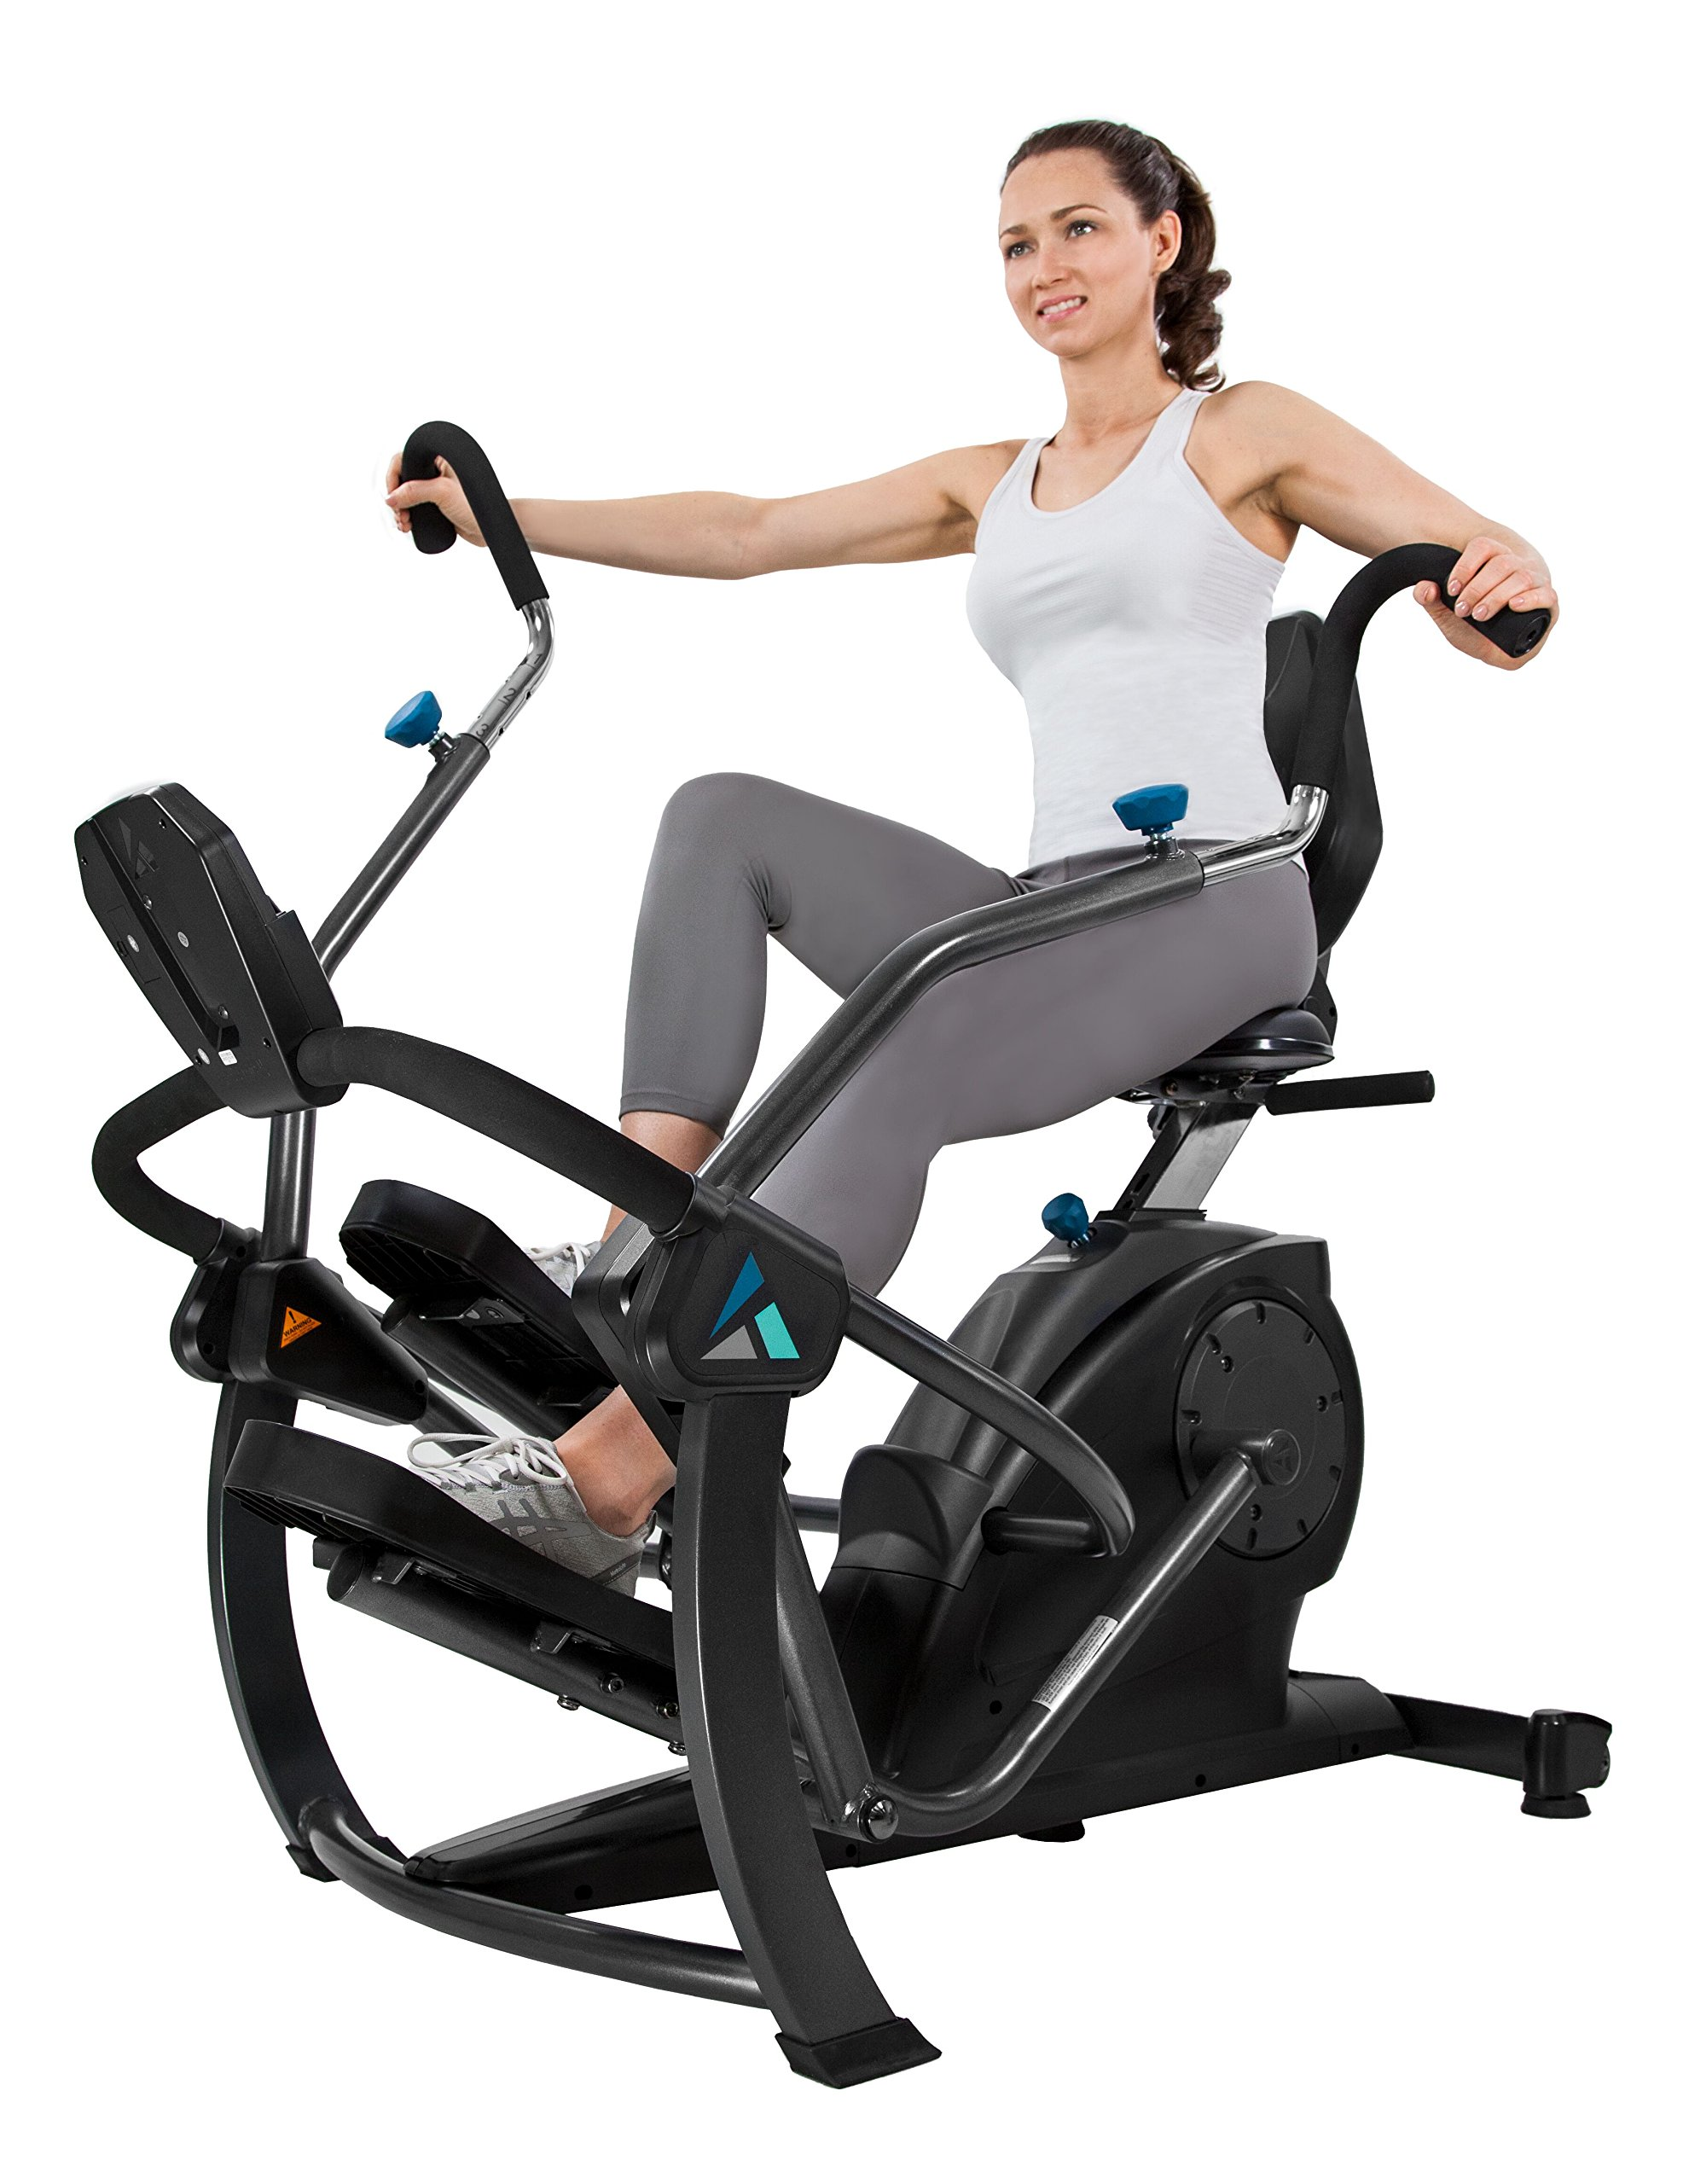 Teeter FreeStep Recumbent Cross Trainer and Elliptical